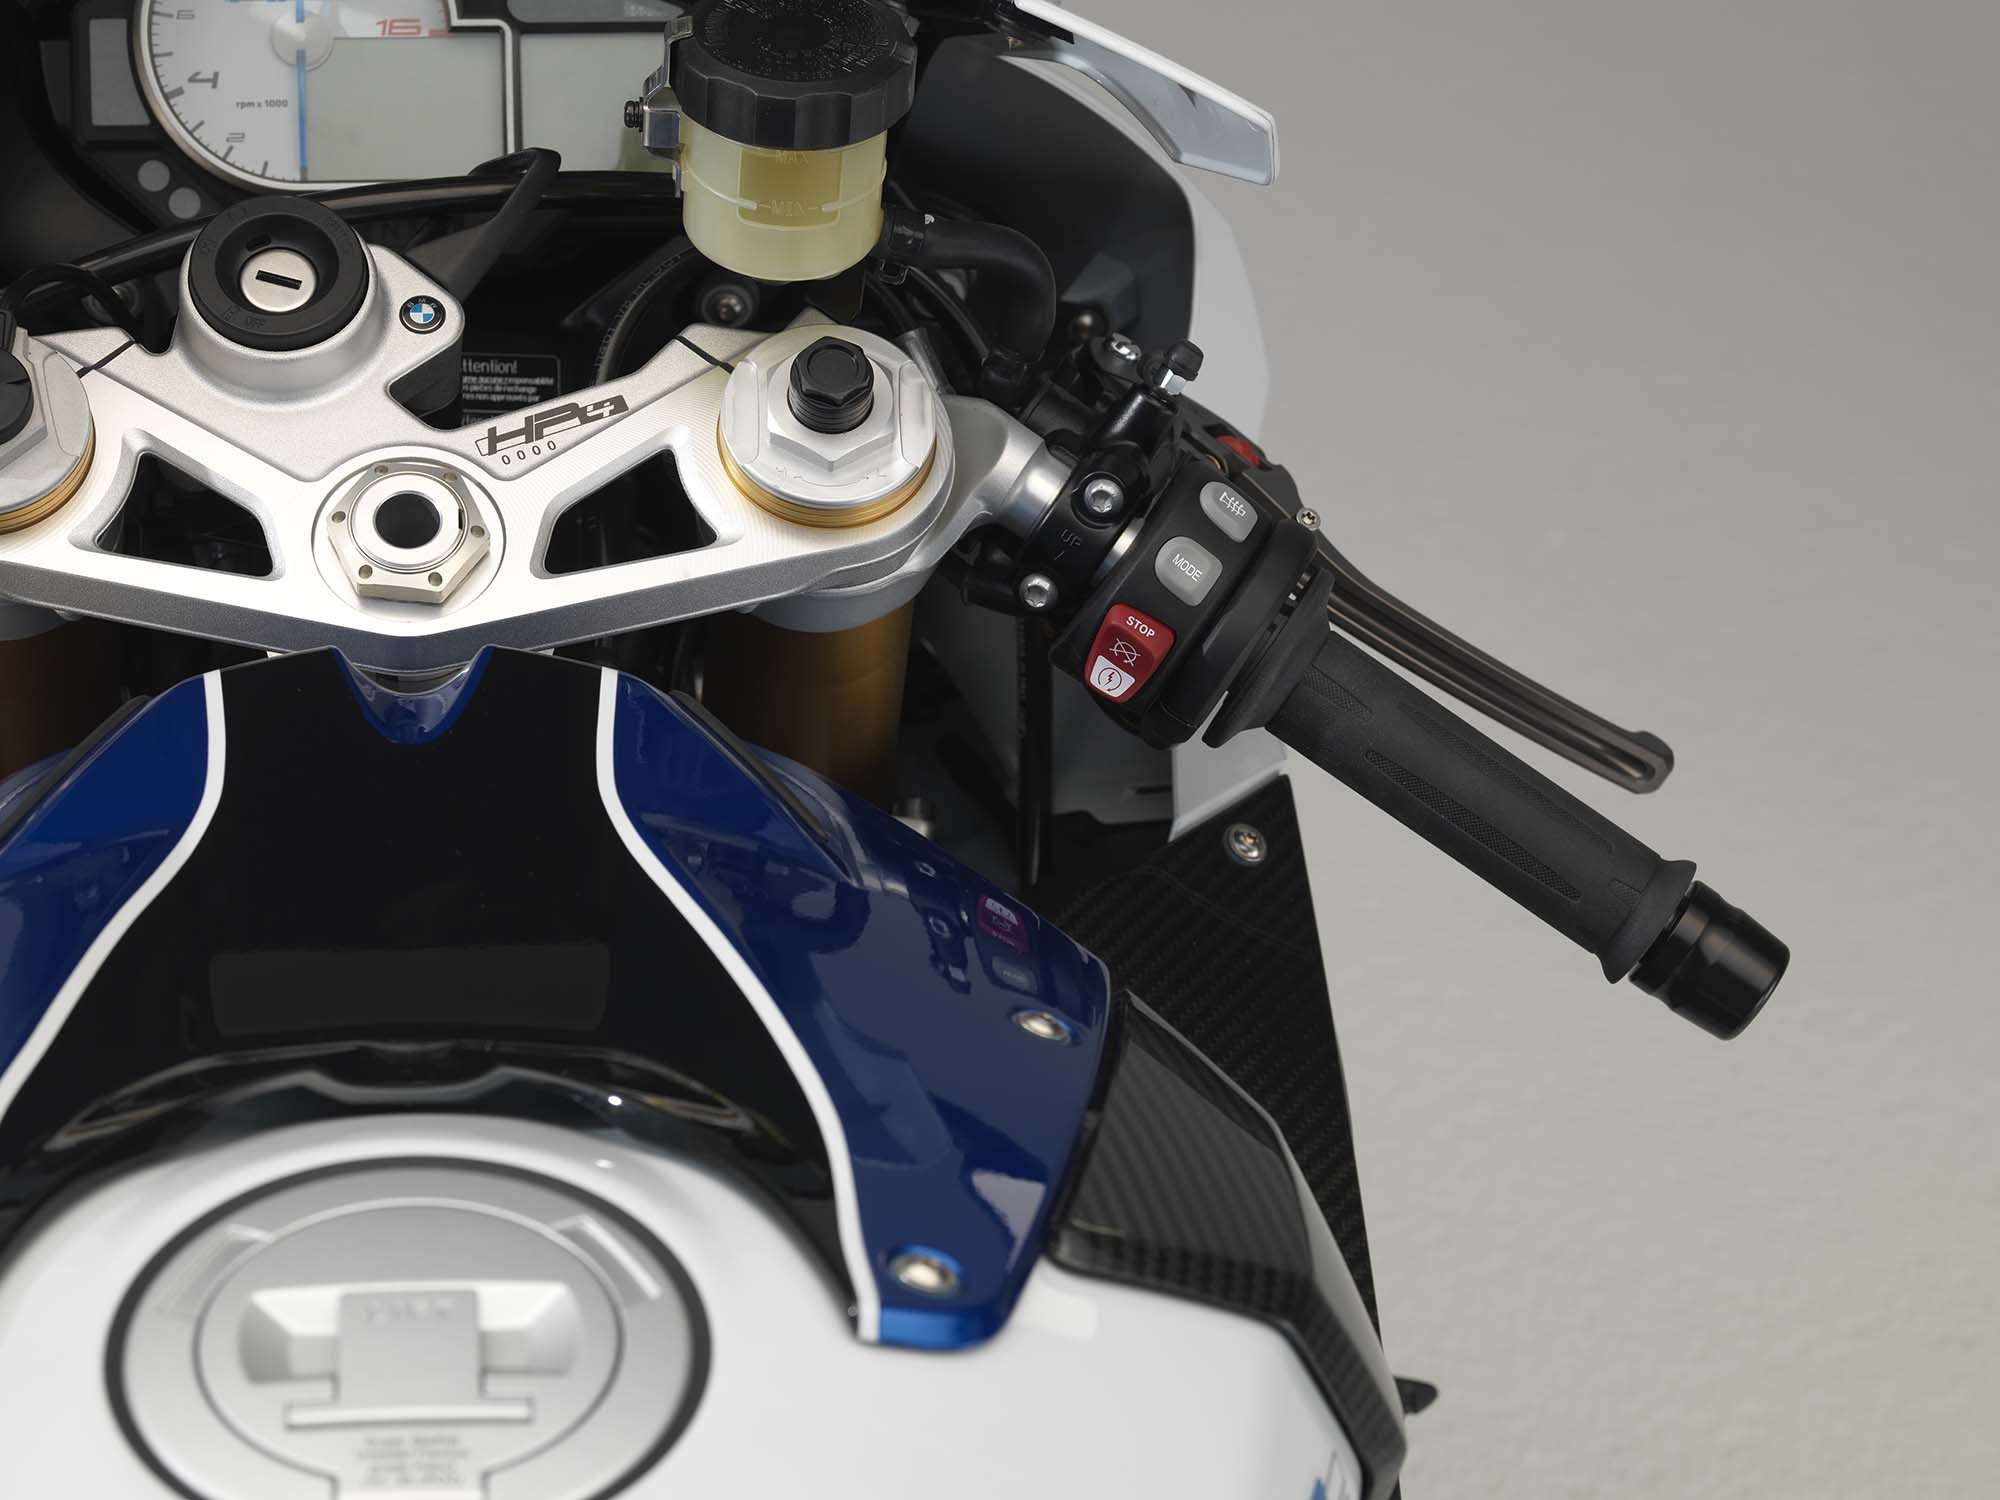 Sx-Z | BMW HP4 Based On The S 1000 RR